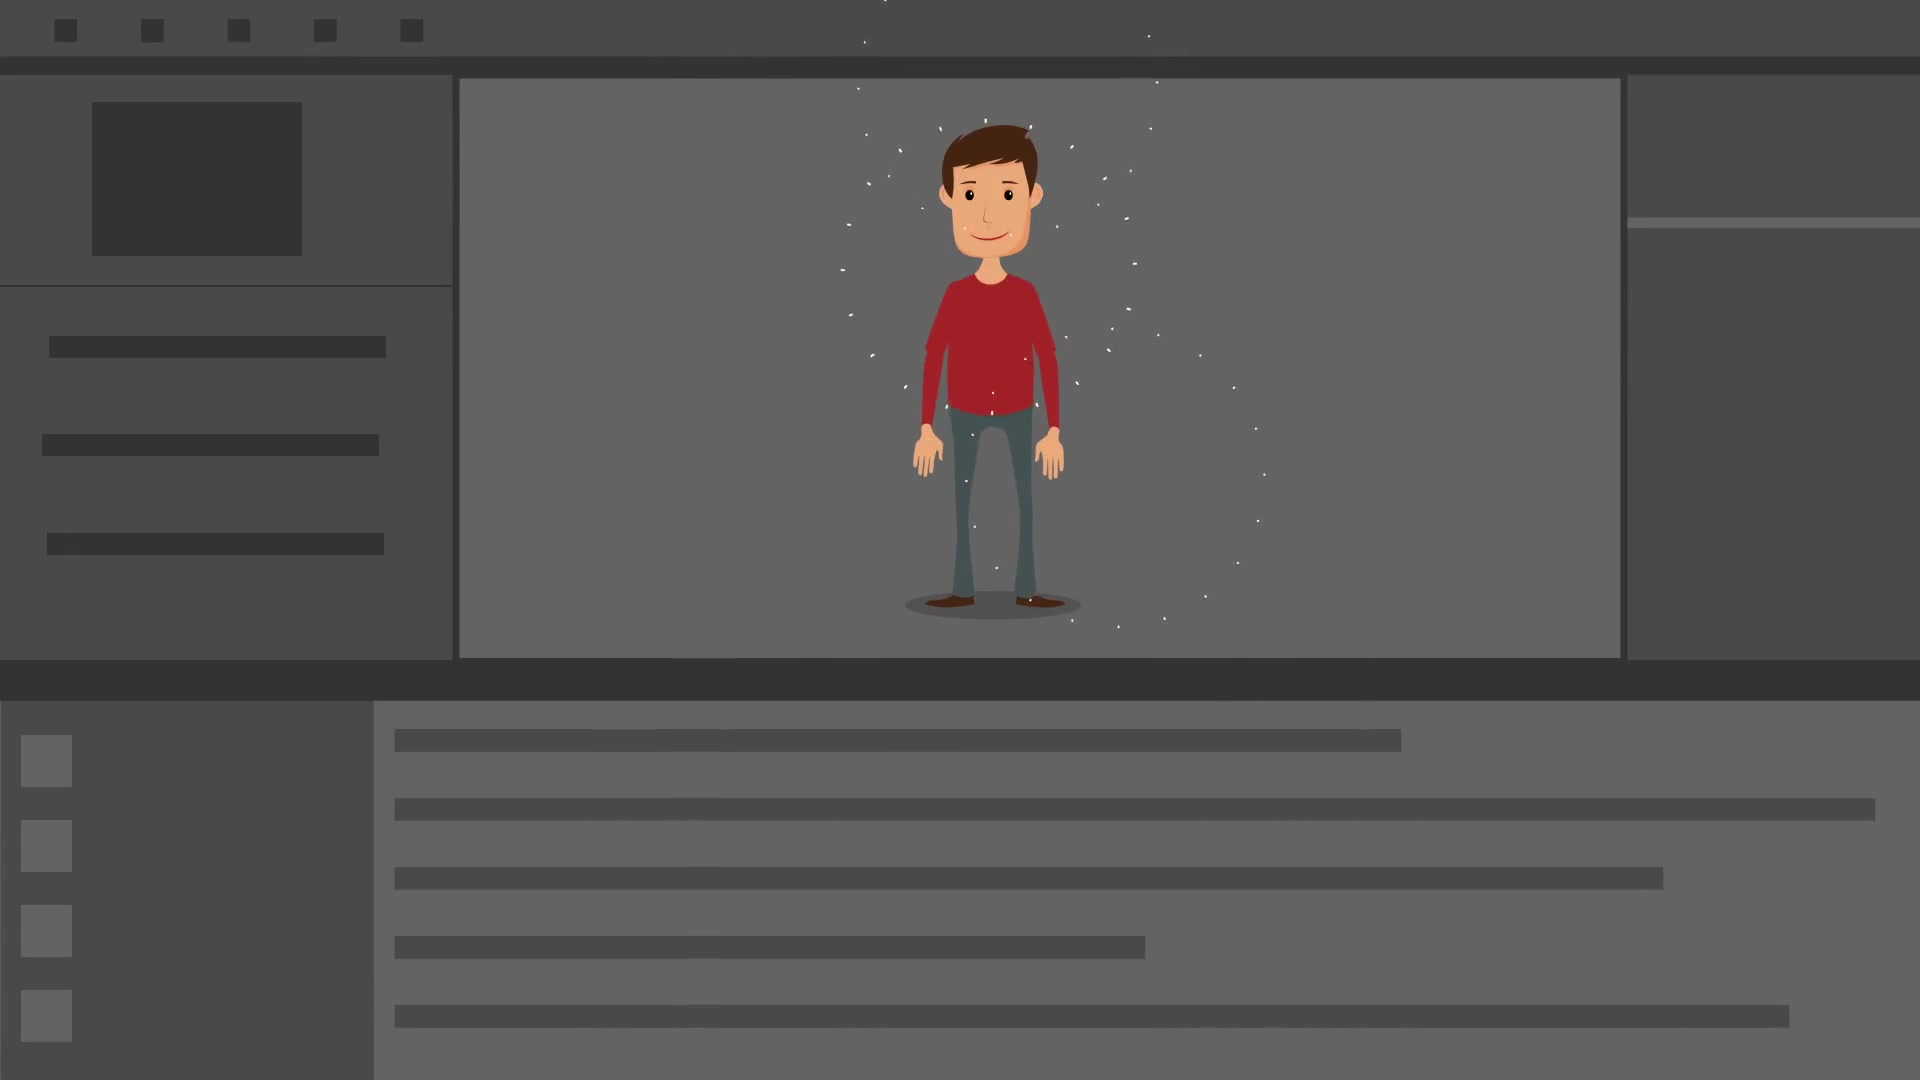 Character Design Animation Toolkit After Effects Project : Character animation composer explainer video toolkit